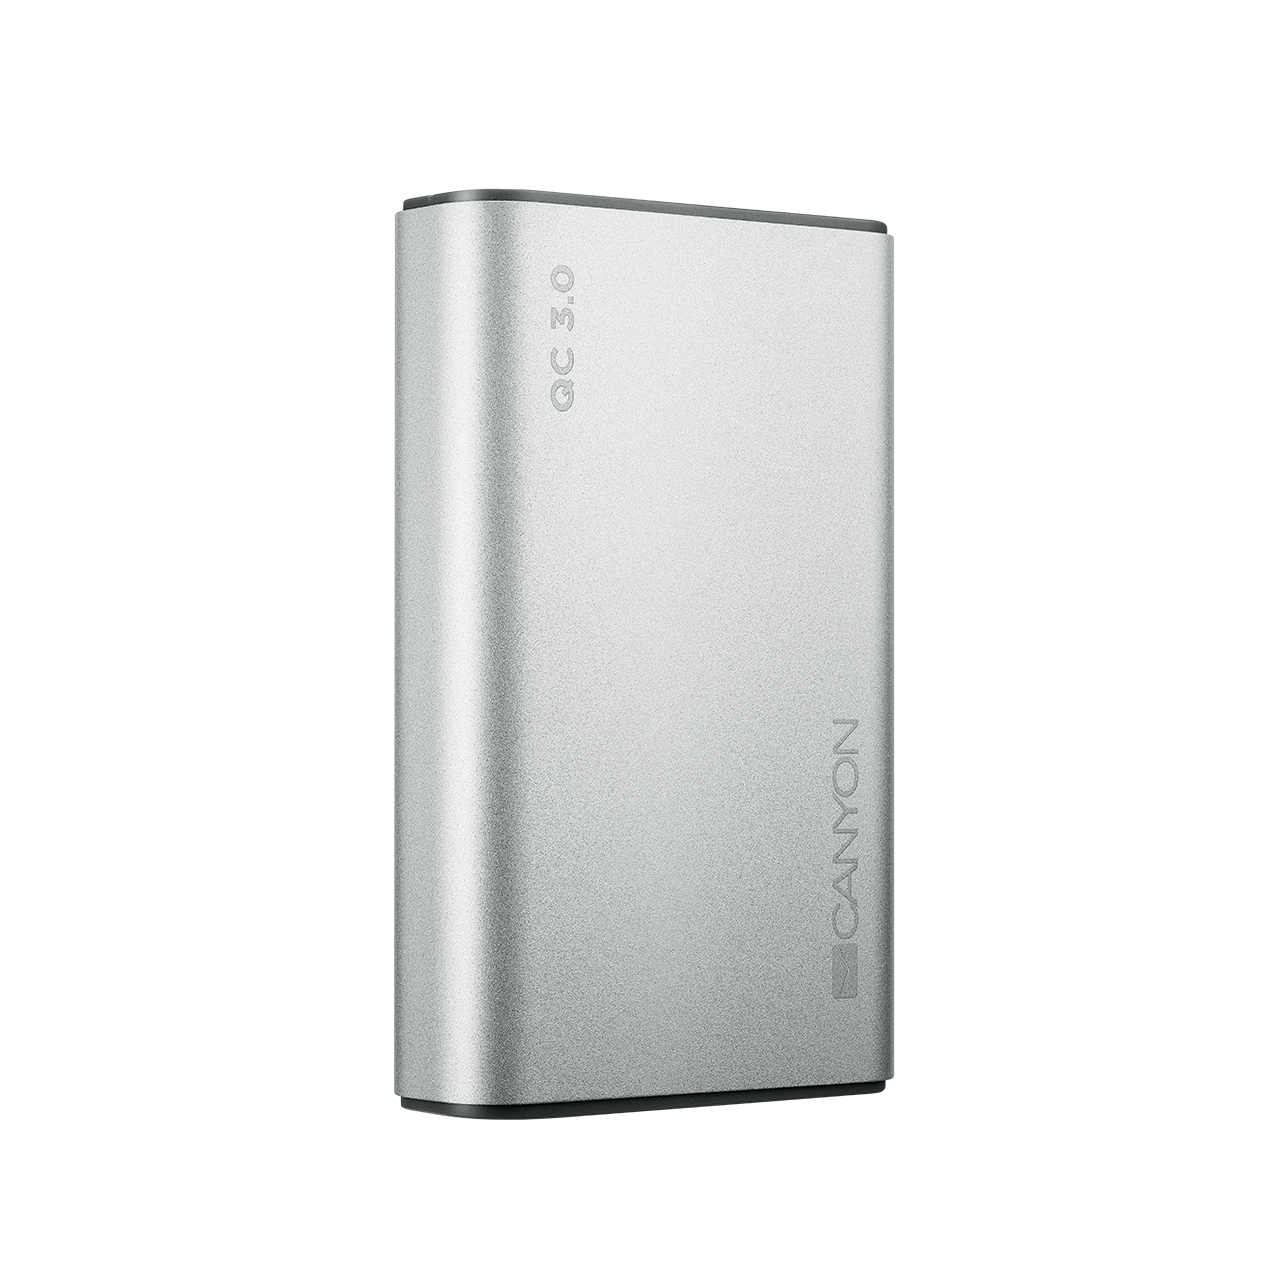 Baterie Externa Canyon CND-TPBQC10S Quick Charge 3.0 10000mAh Silver